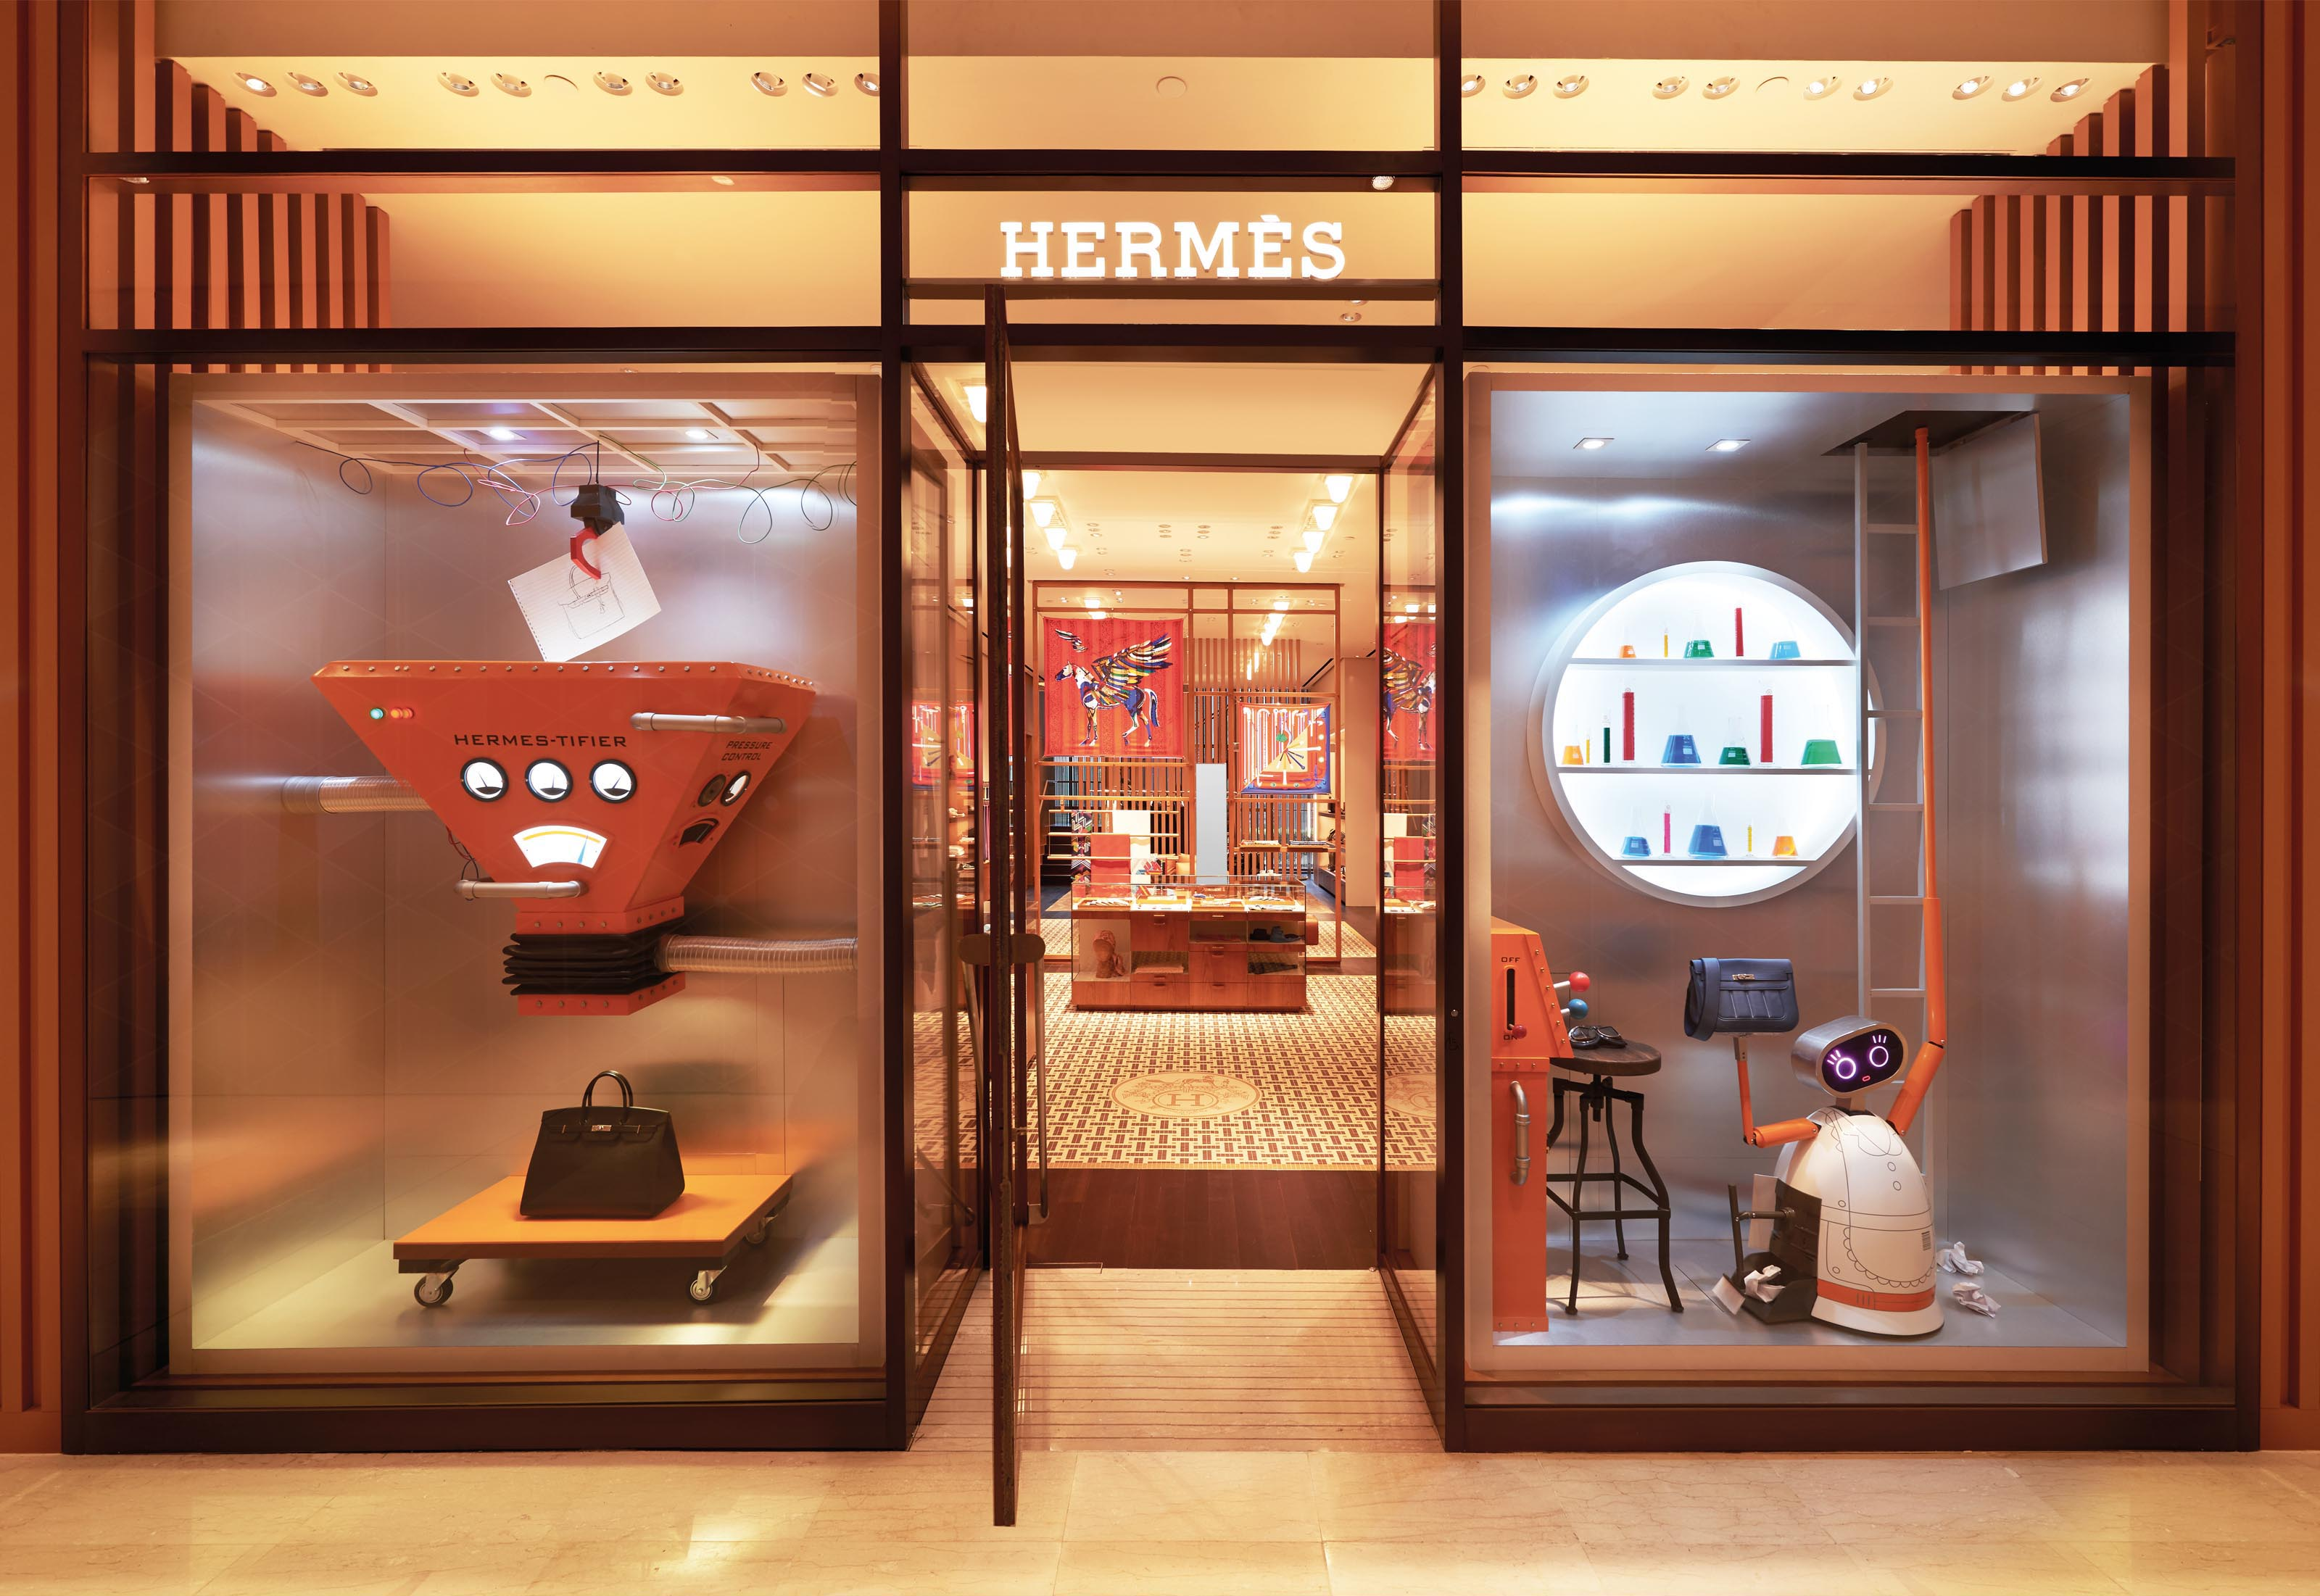 Hermes Opens Its Own Perfume Boutique in New York Hermes Opens Its Own Perfume Boutique in New York new pictures